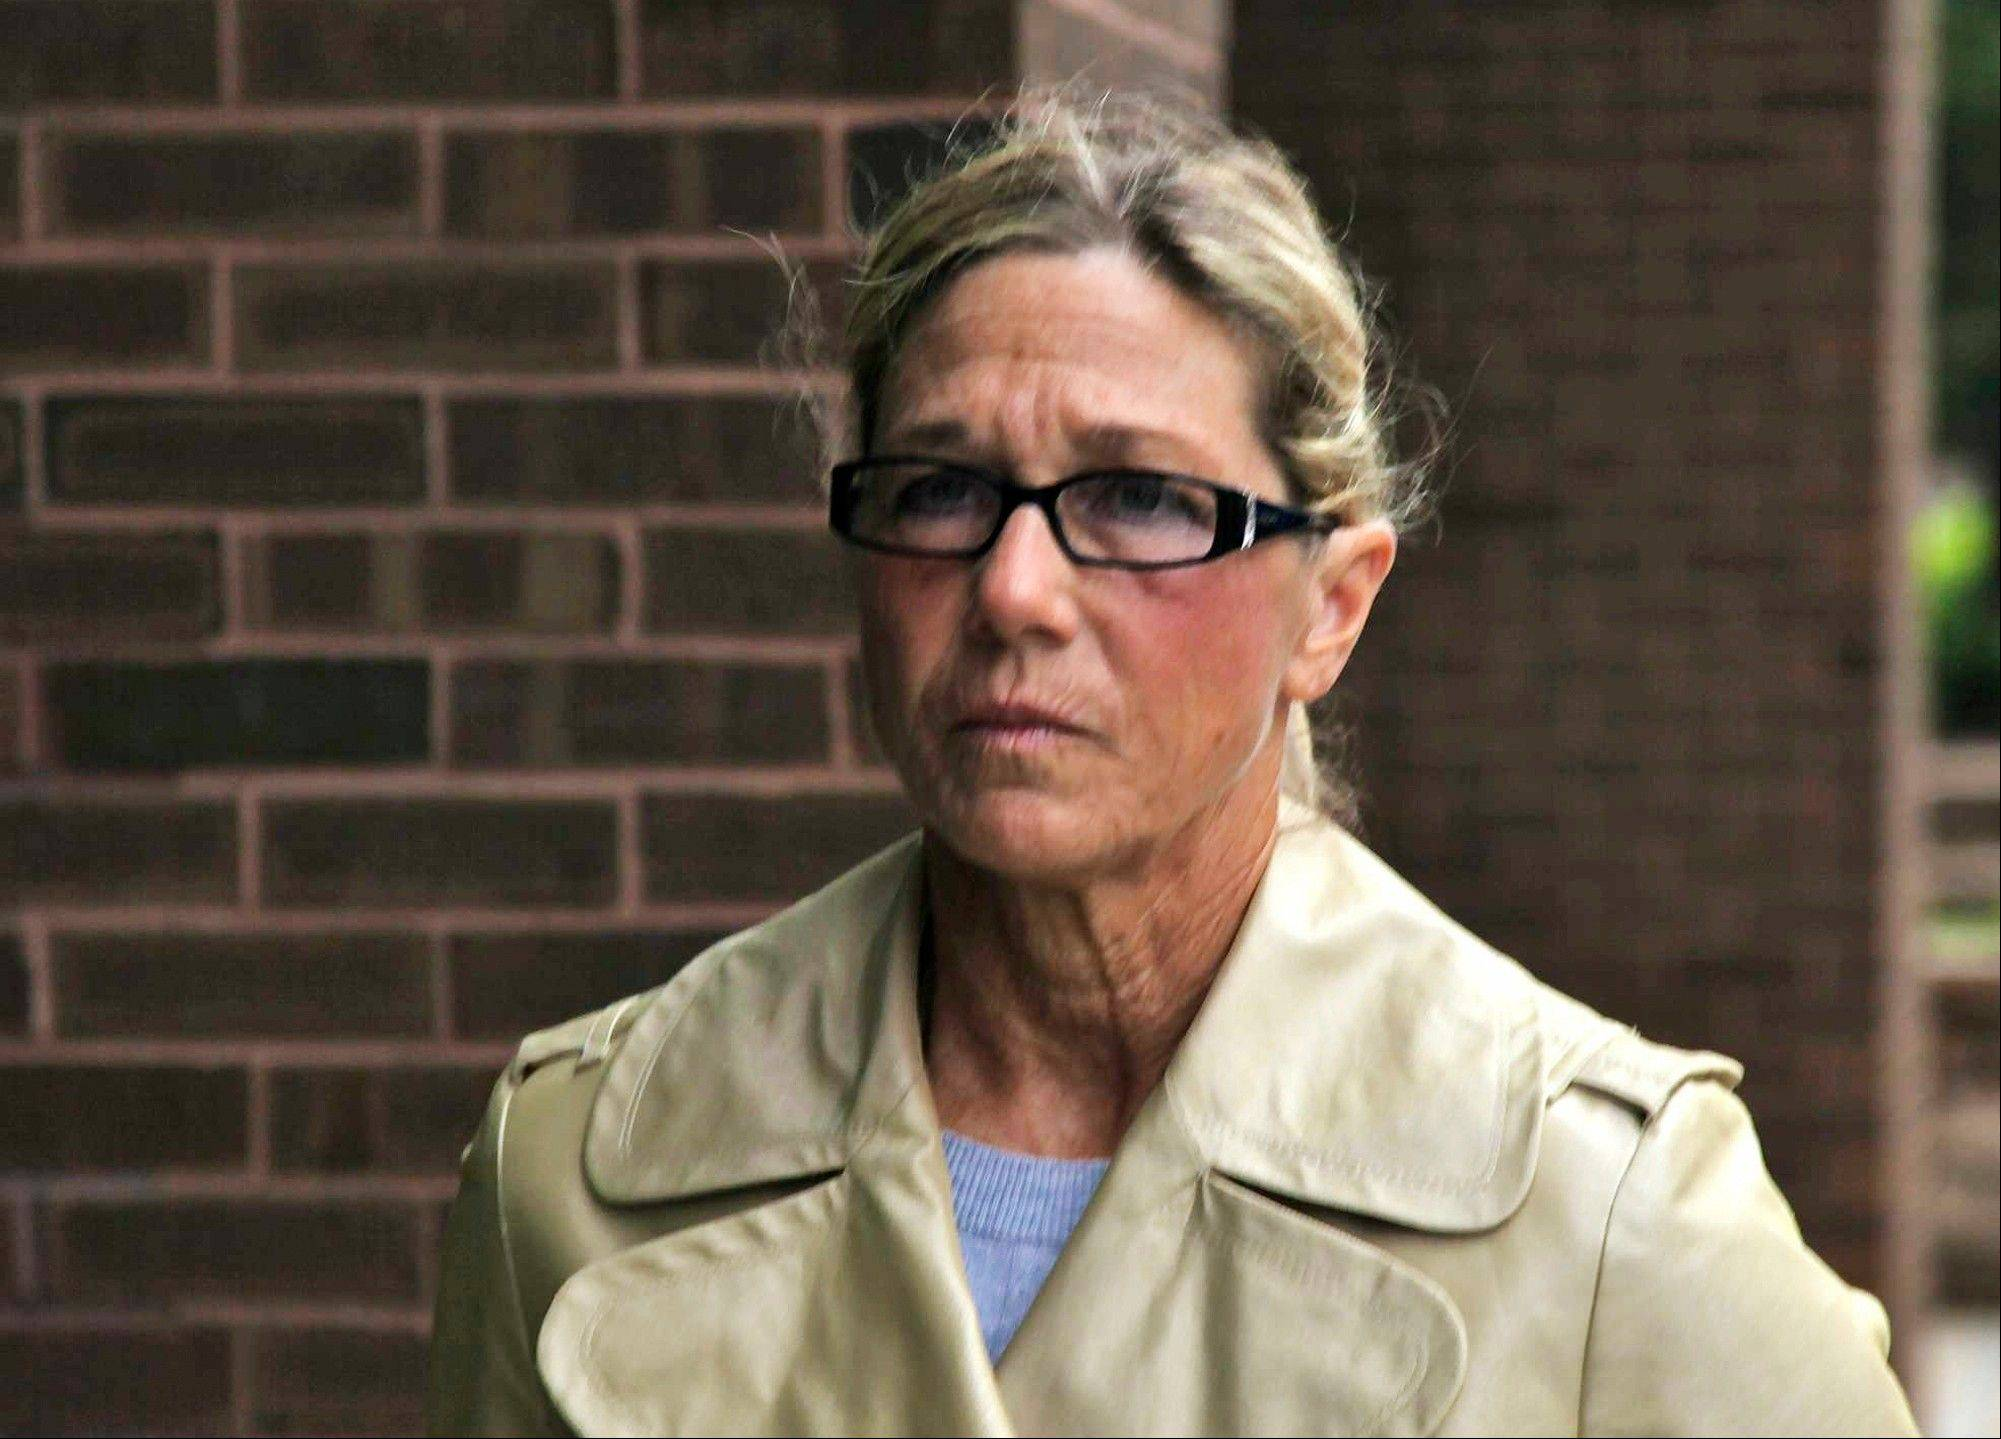 Rita Crundwell, former comptroller for Dixon, pleaded guilty last month to stealing more than $53 million from the city over 20 years.